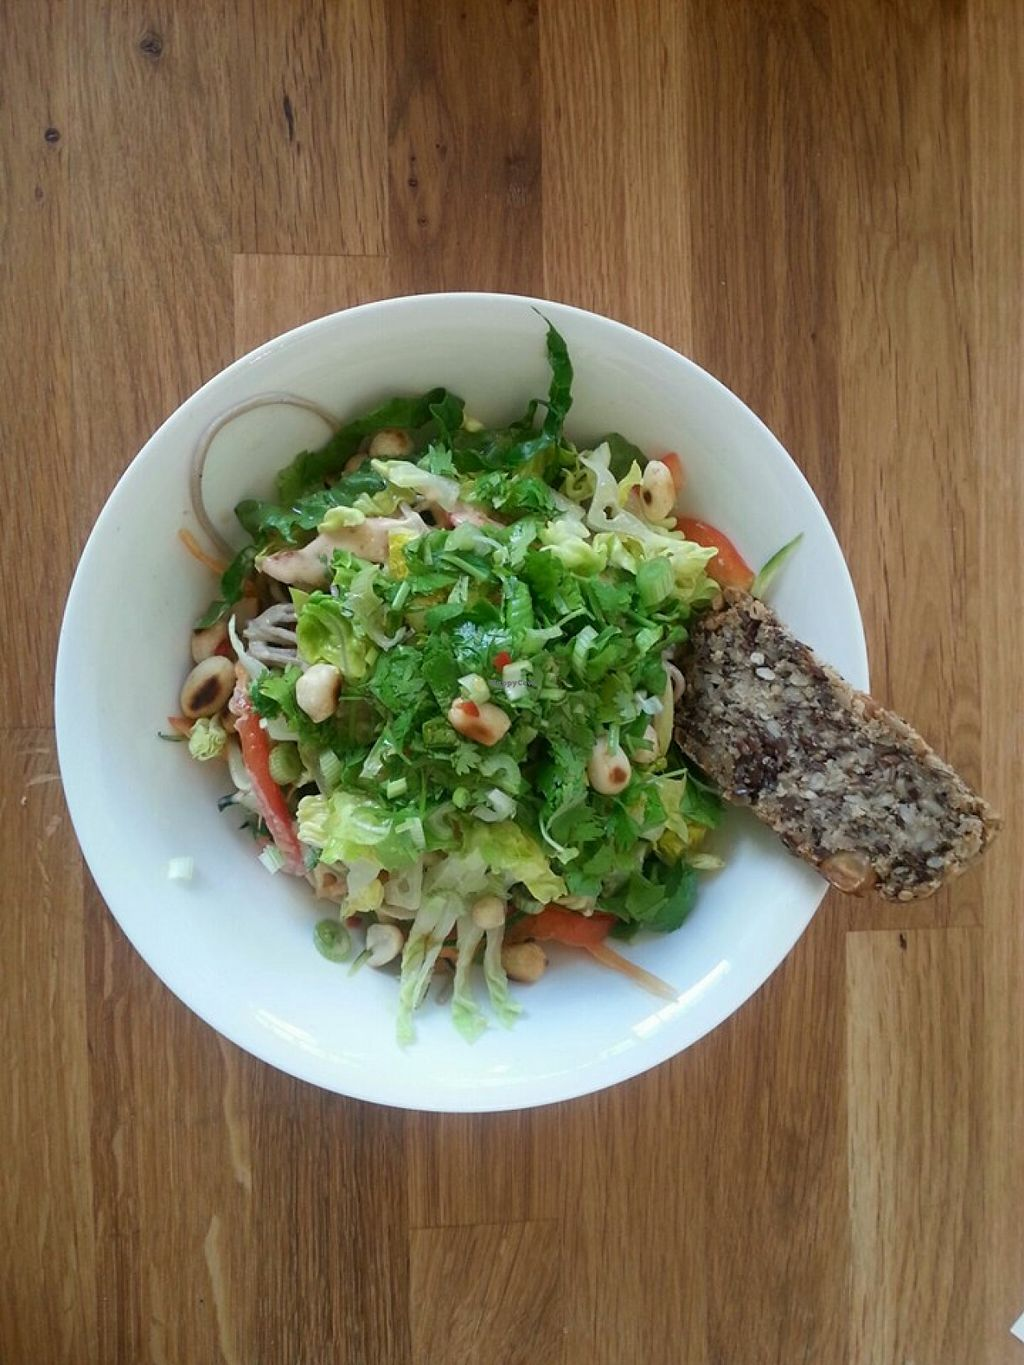 """Photo of The Green Kitchen  by <a href=""""/members/profile/community"""">community</a> <br/>salad bowl  <br/> May 19, 2016  - <a href='/contact/abuse/image/73597/149878'>Report</a>"""